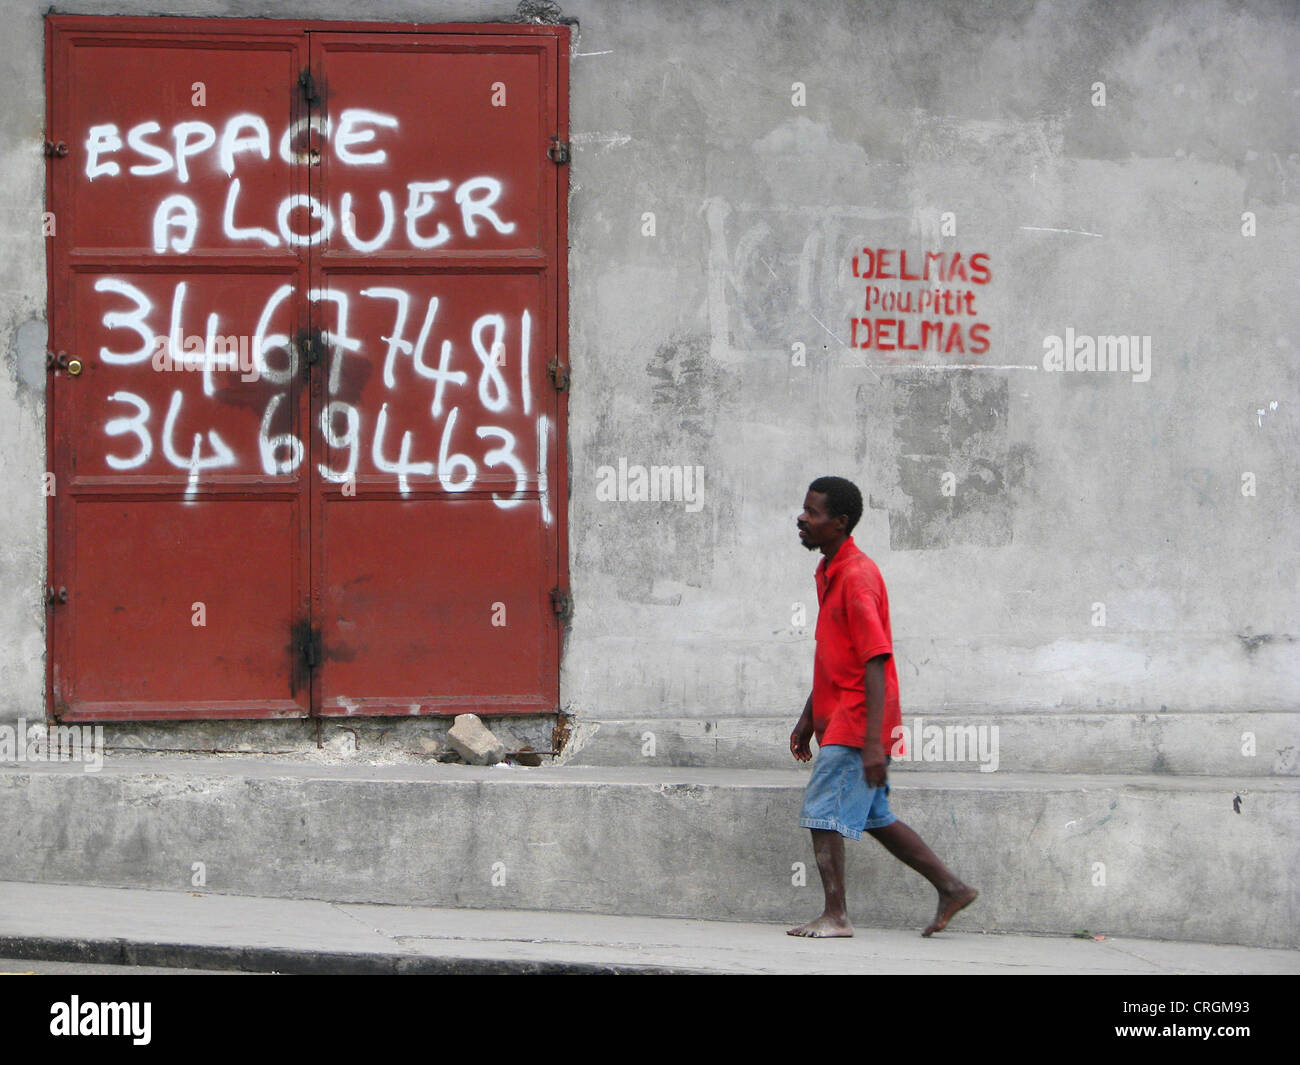 man walking along a concrete wall with an iron door offering space for rent, Haiti, Province de l'Ouest, Delmas, - Stock Image